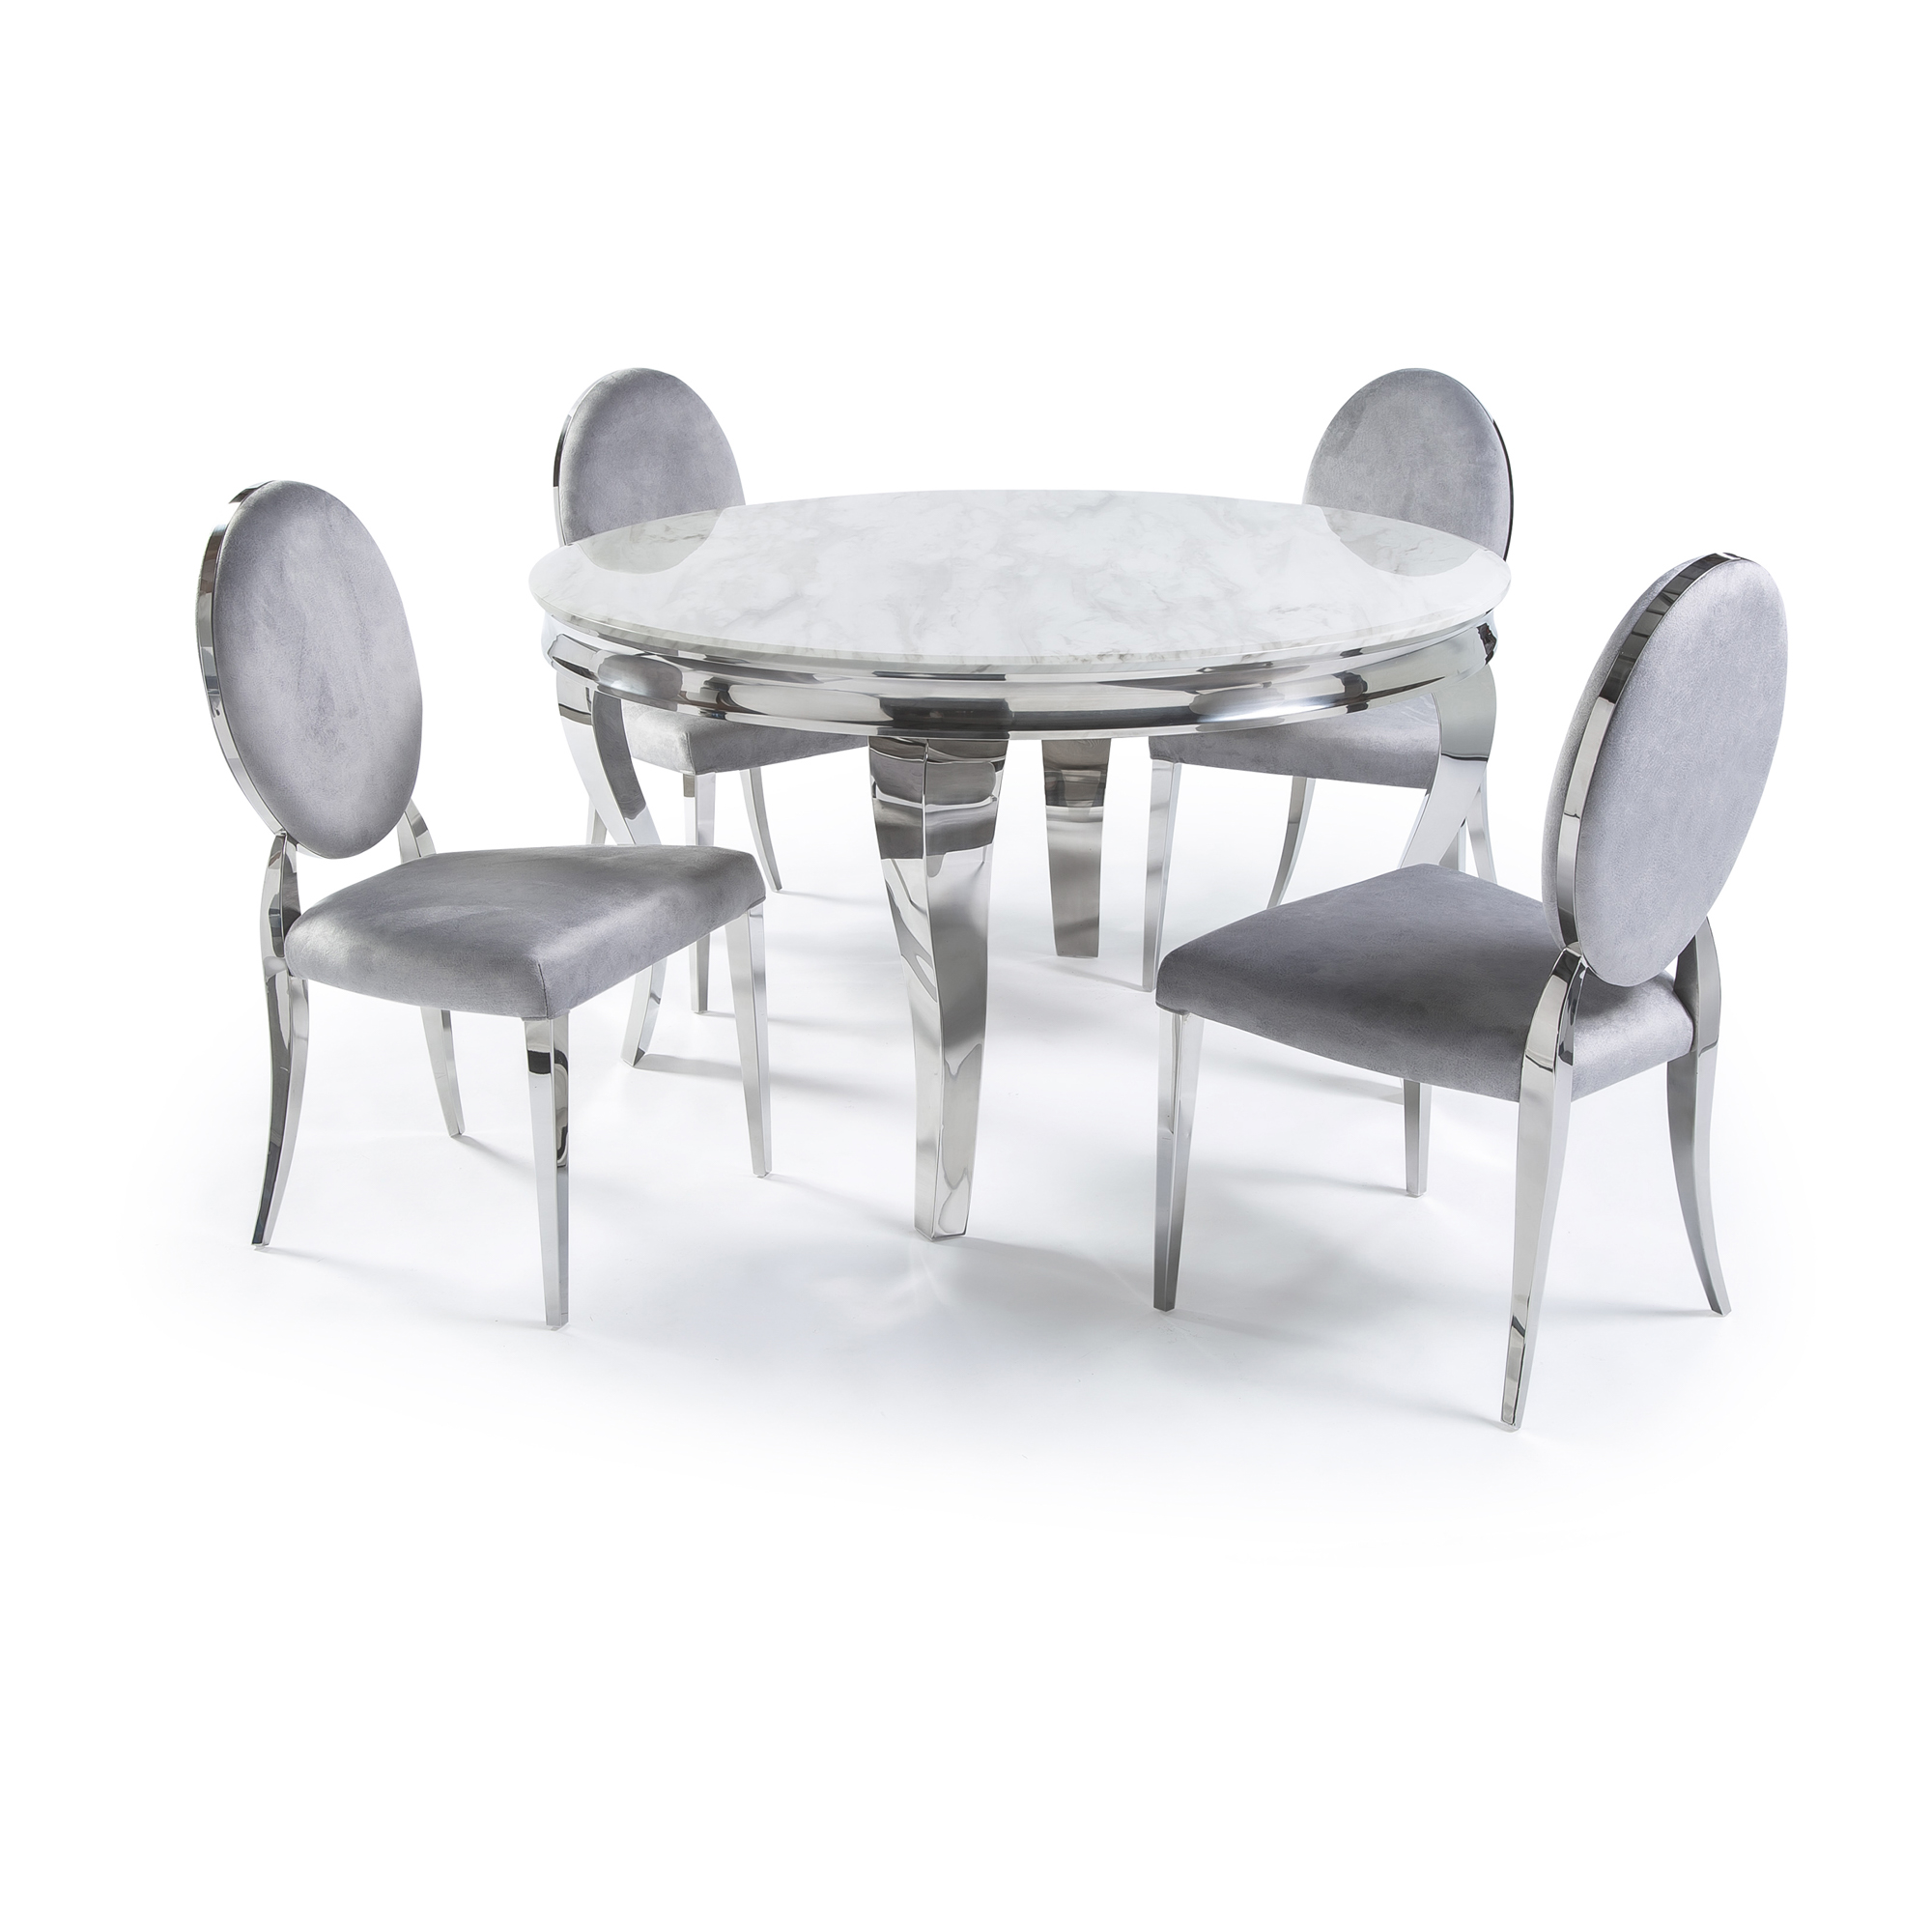 1.3m Circular Louis Polished Steel Dining White Marble Table Set with 4 Louis Grey Brushed Velvet Dining Chair